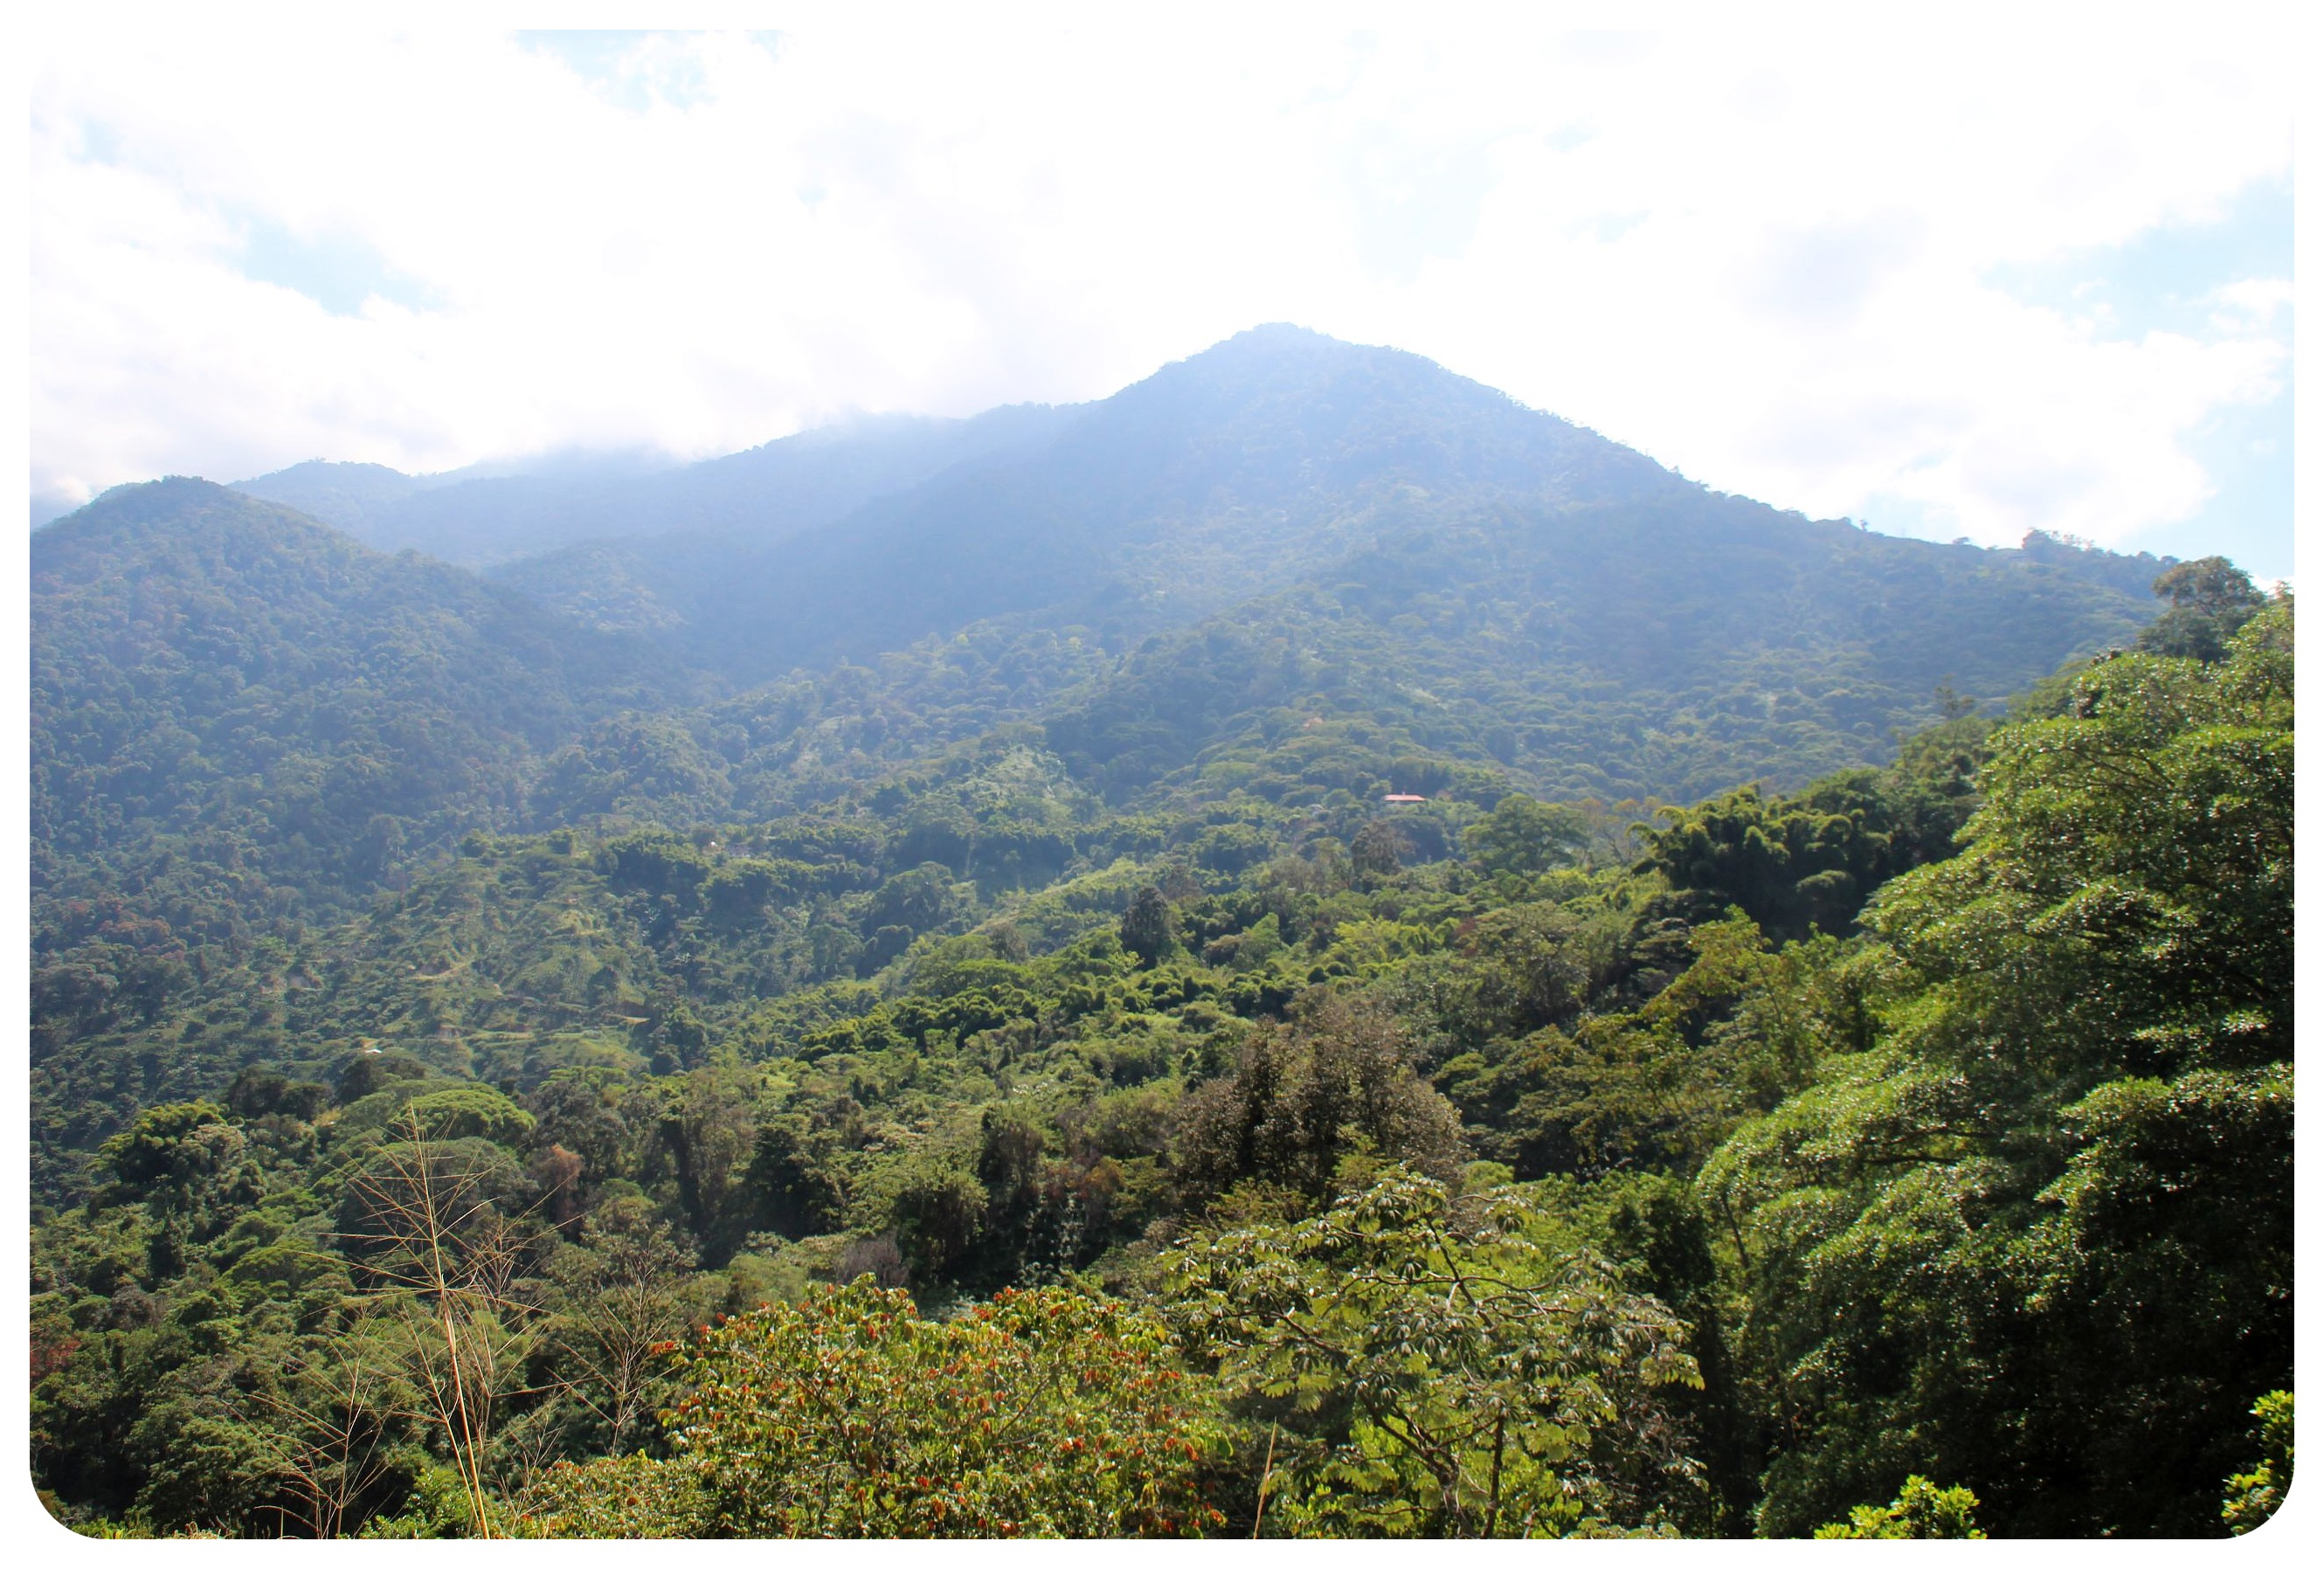 finca victoria coffee plantation